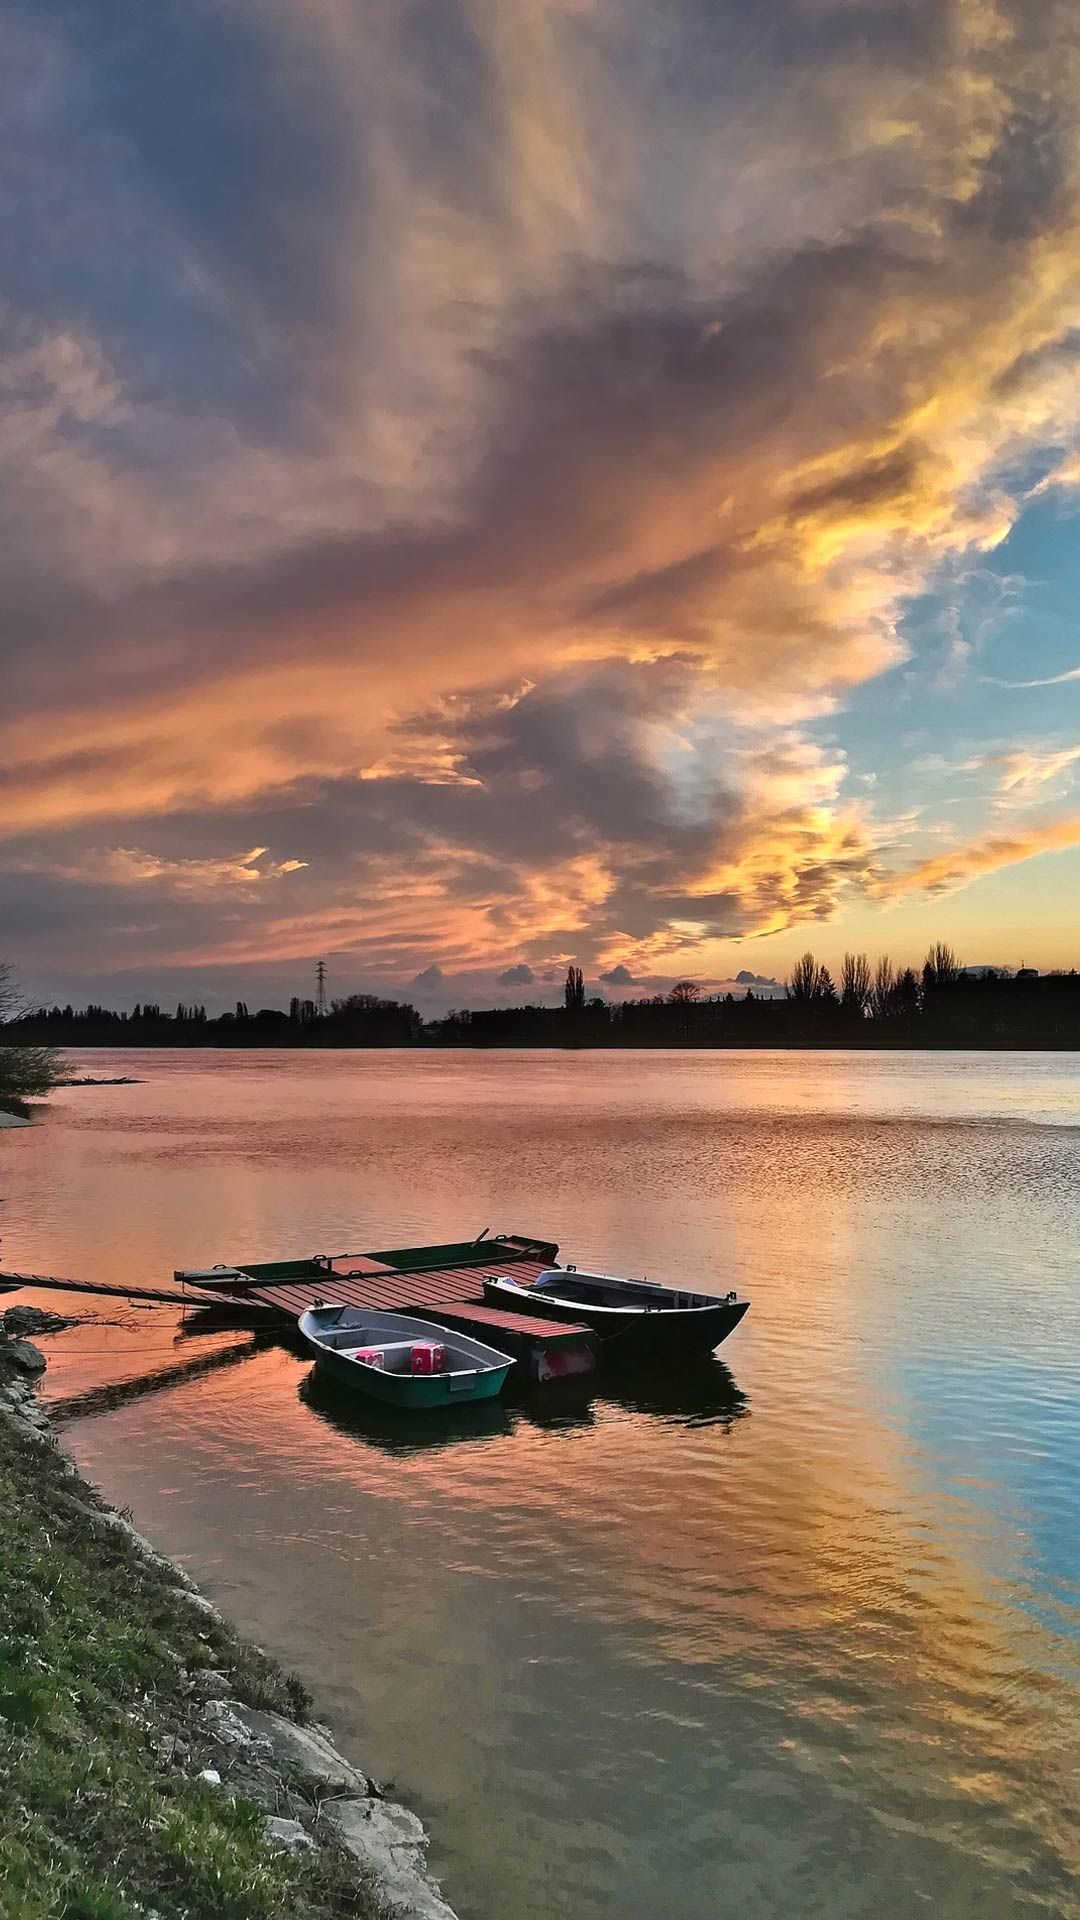 River Sunset Wallpaper For Android Mobile Phone Sunset Wallpaper Android Wallpaper Wallpaper